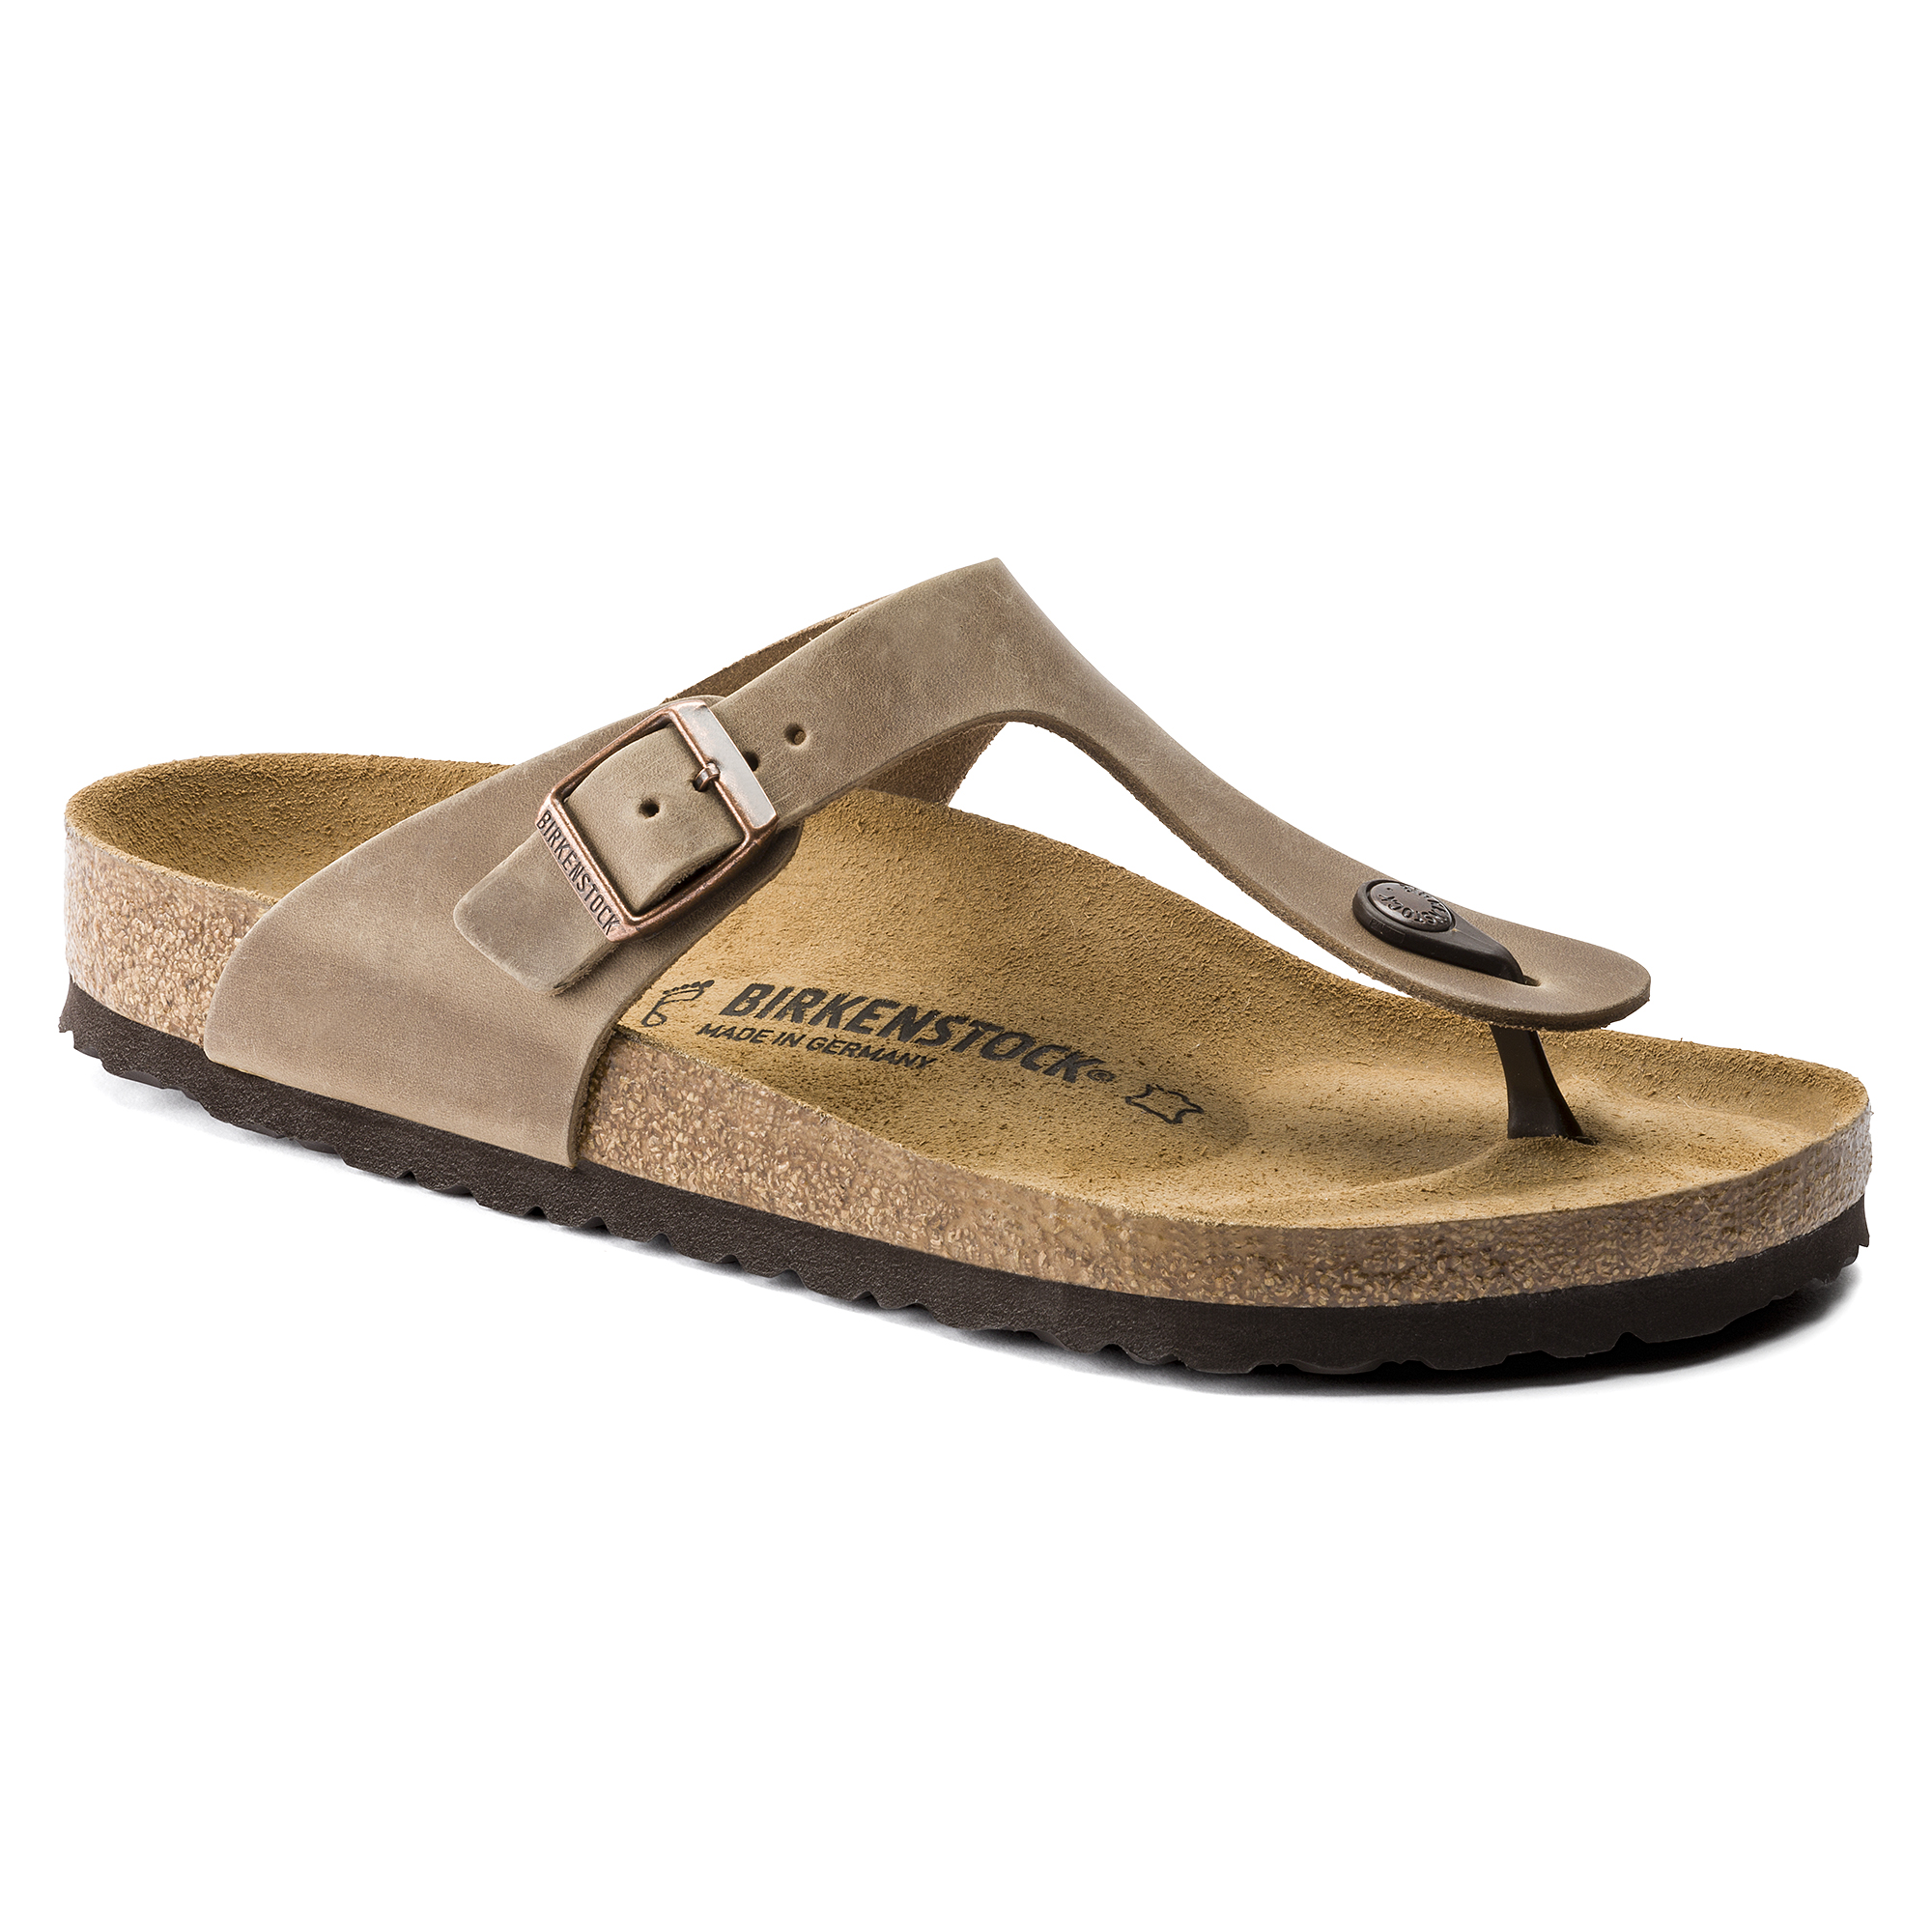 Birkenstock gizeh 43 10 tobacco leather sandals